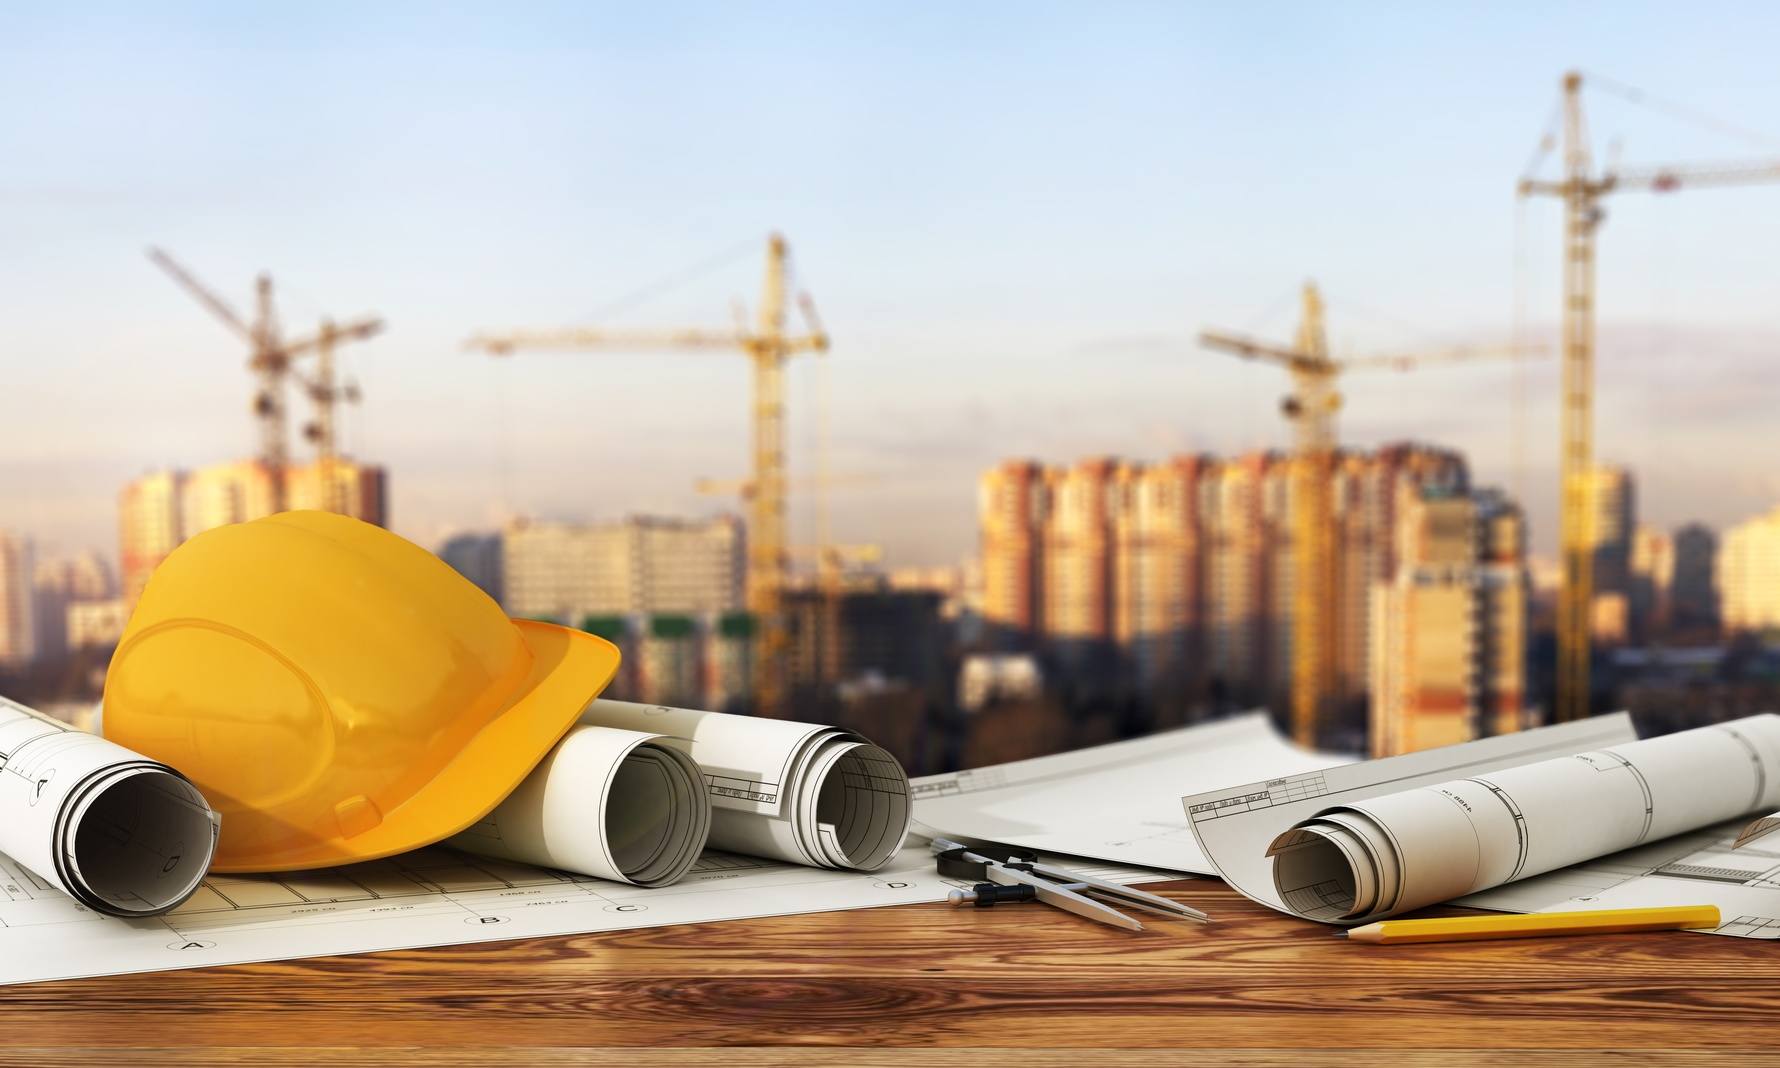 The IoT In Construction: An Analysis Of Innovations & Use Cases